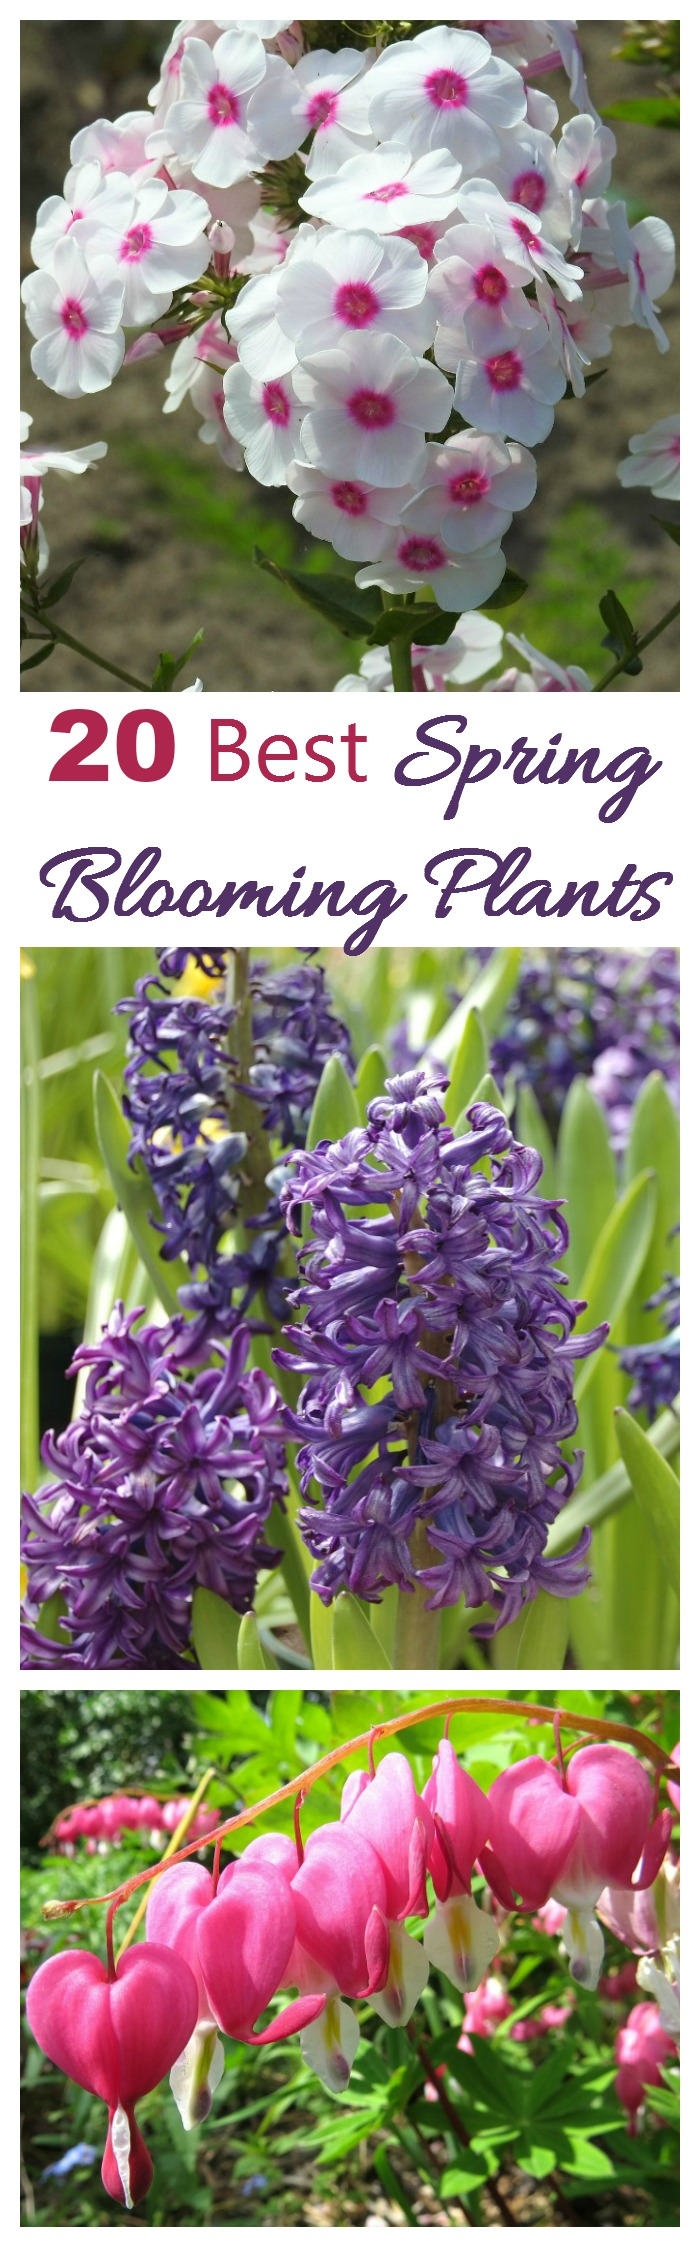 Spring blooming plants my 20 top picks for early spring flowers these are 20 of my favorite spring blooming plants these plants shrubs and trees mightylinksfo